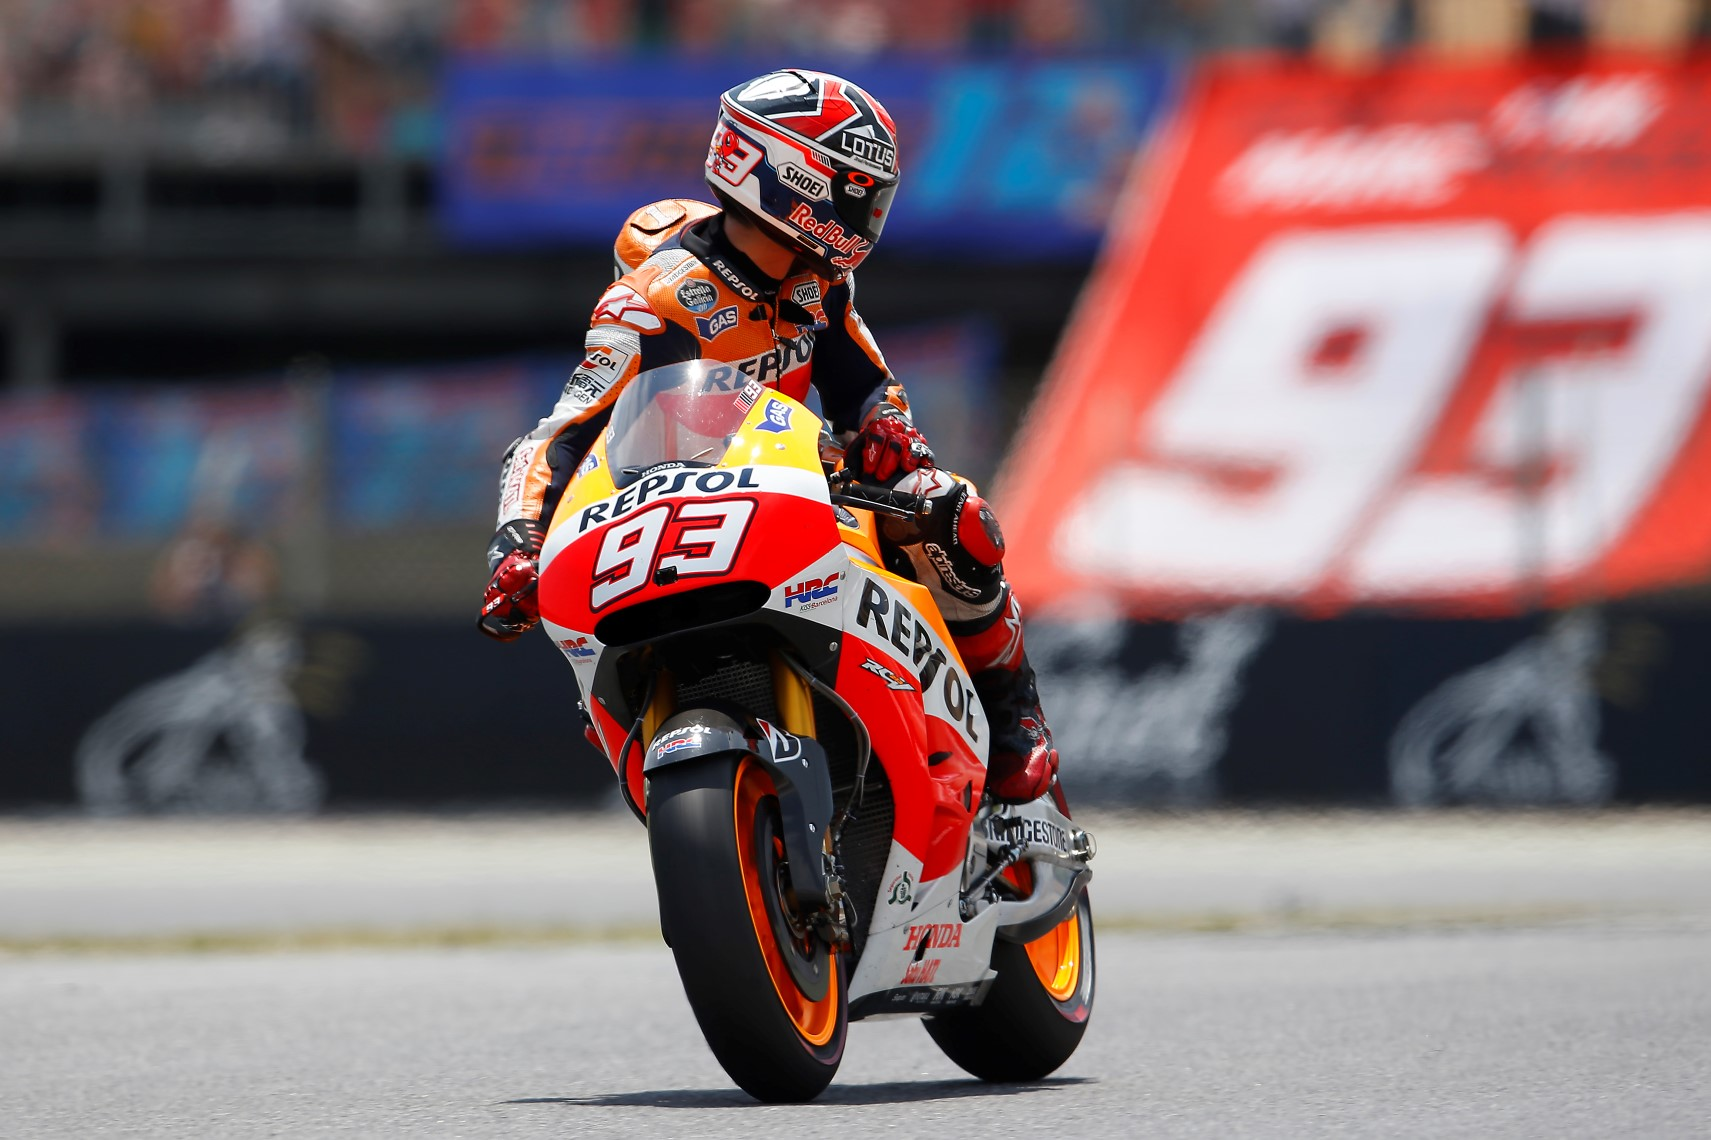 Motogp Repsol | MotoGP 2017 Info, Video, Points Table